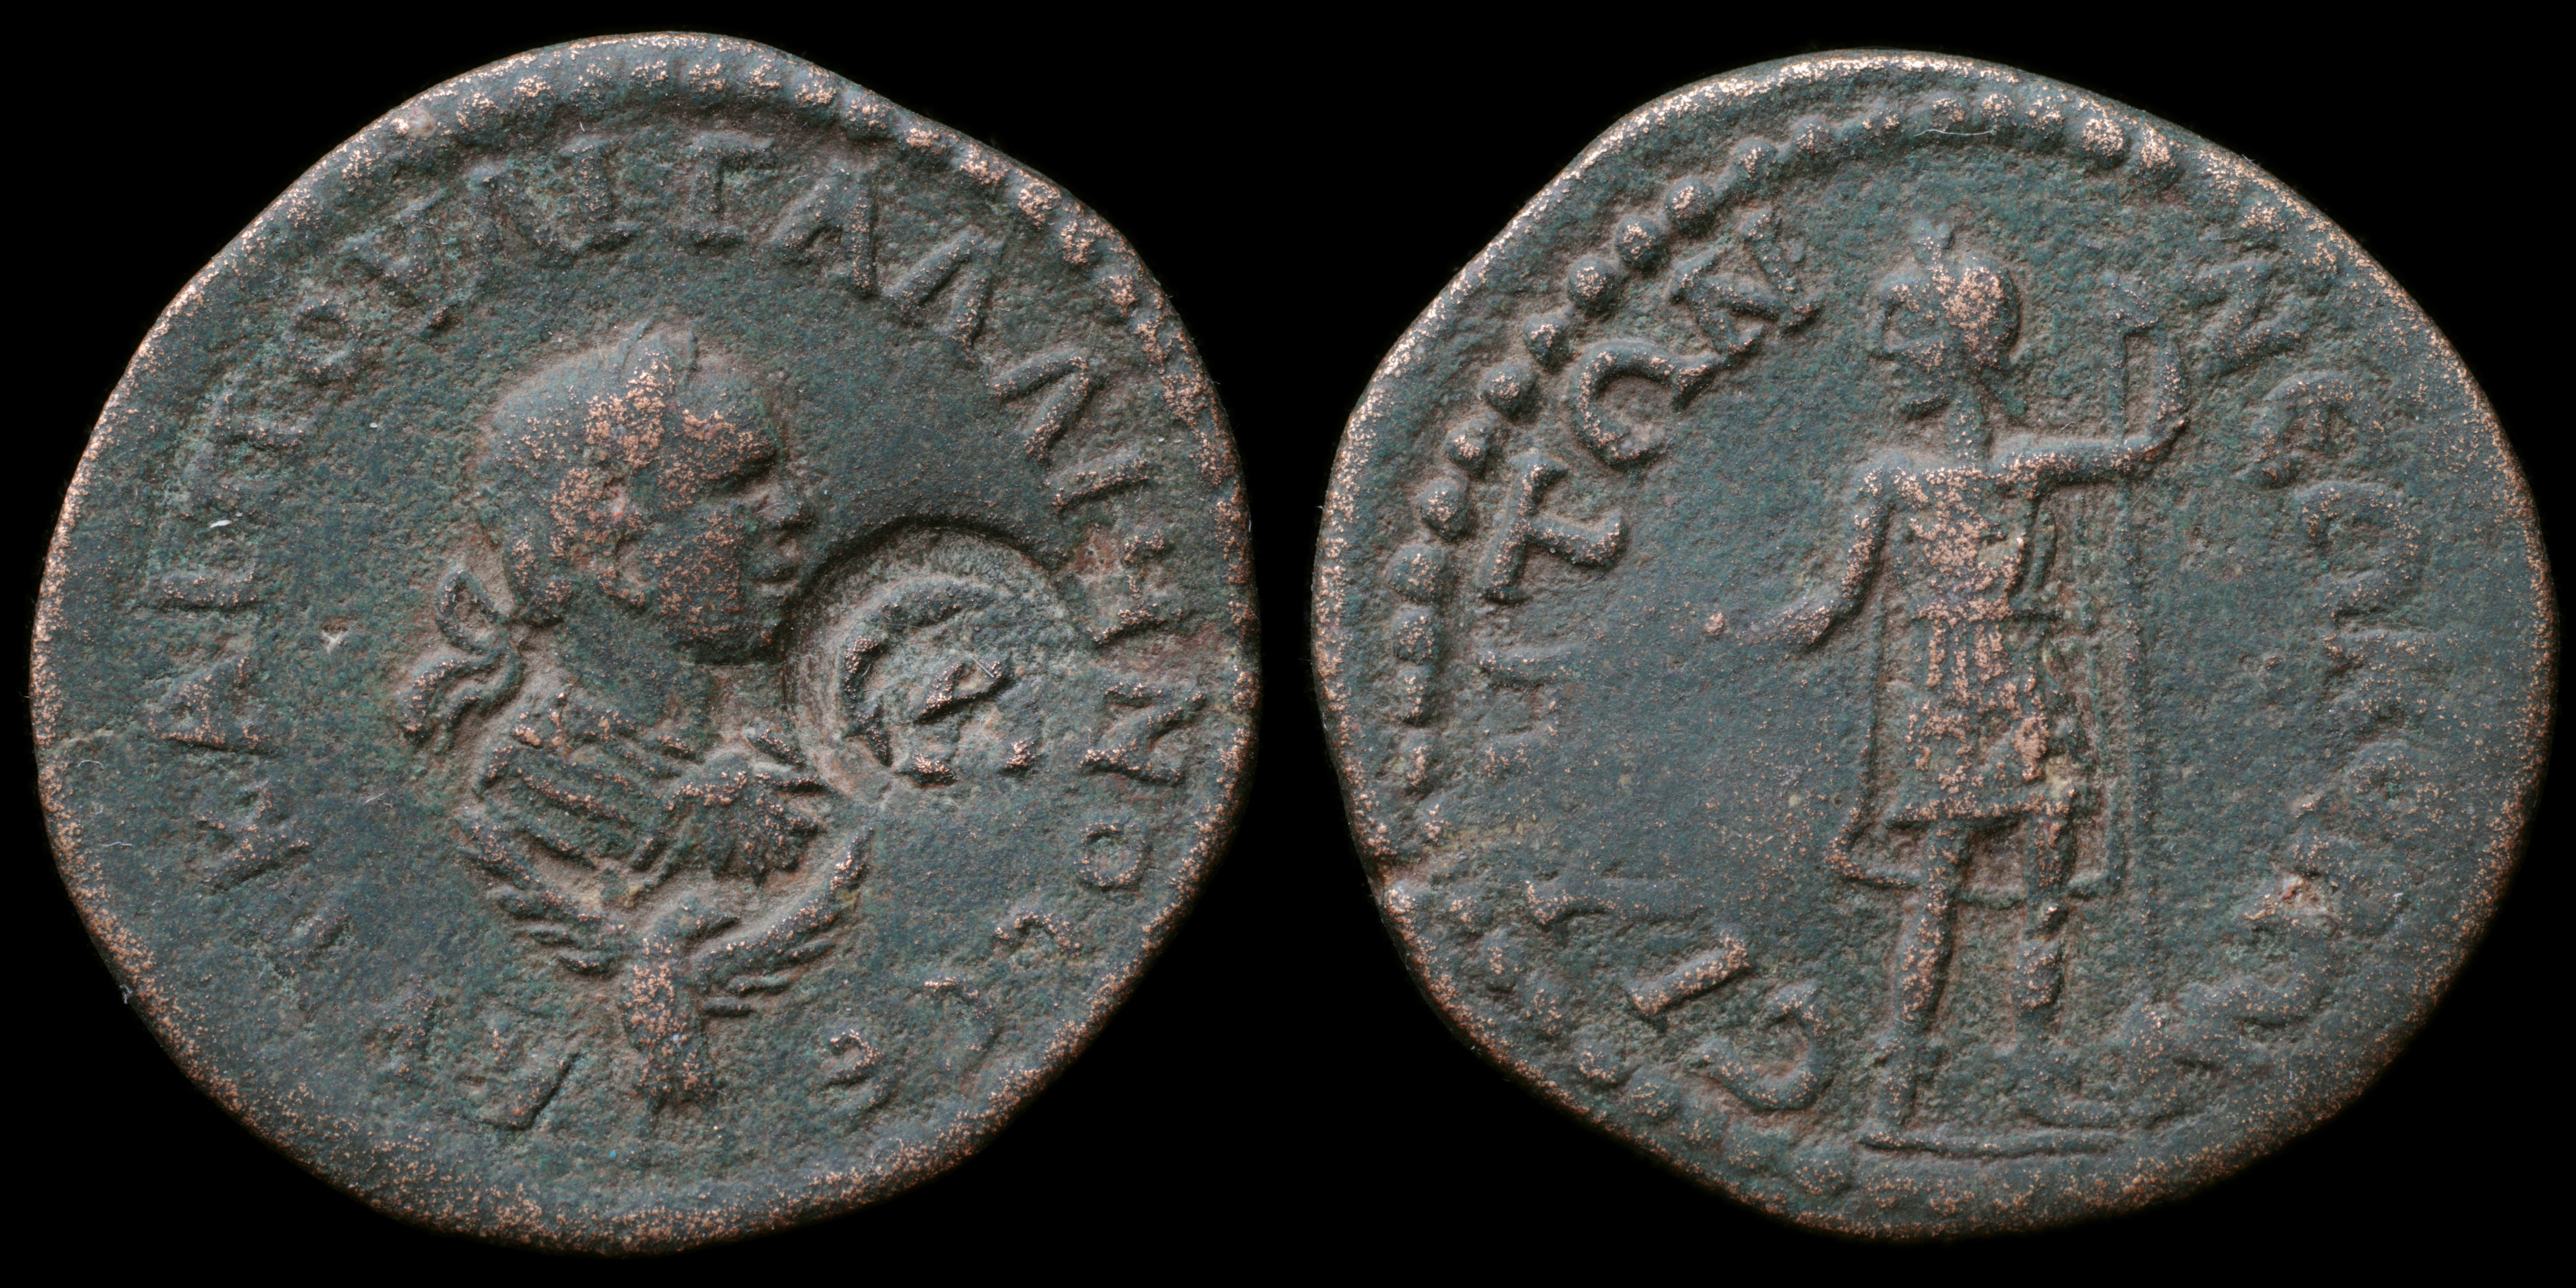 /Files/Images/Coinsite/CoinDB/1425_Gallienus_Side2.jpg